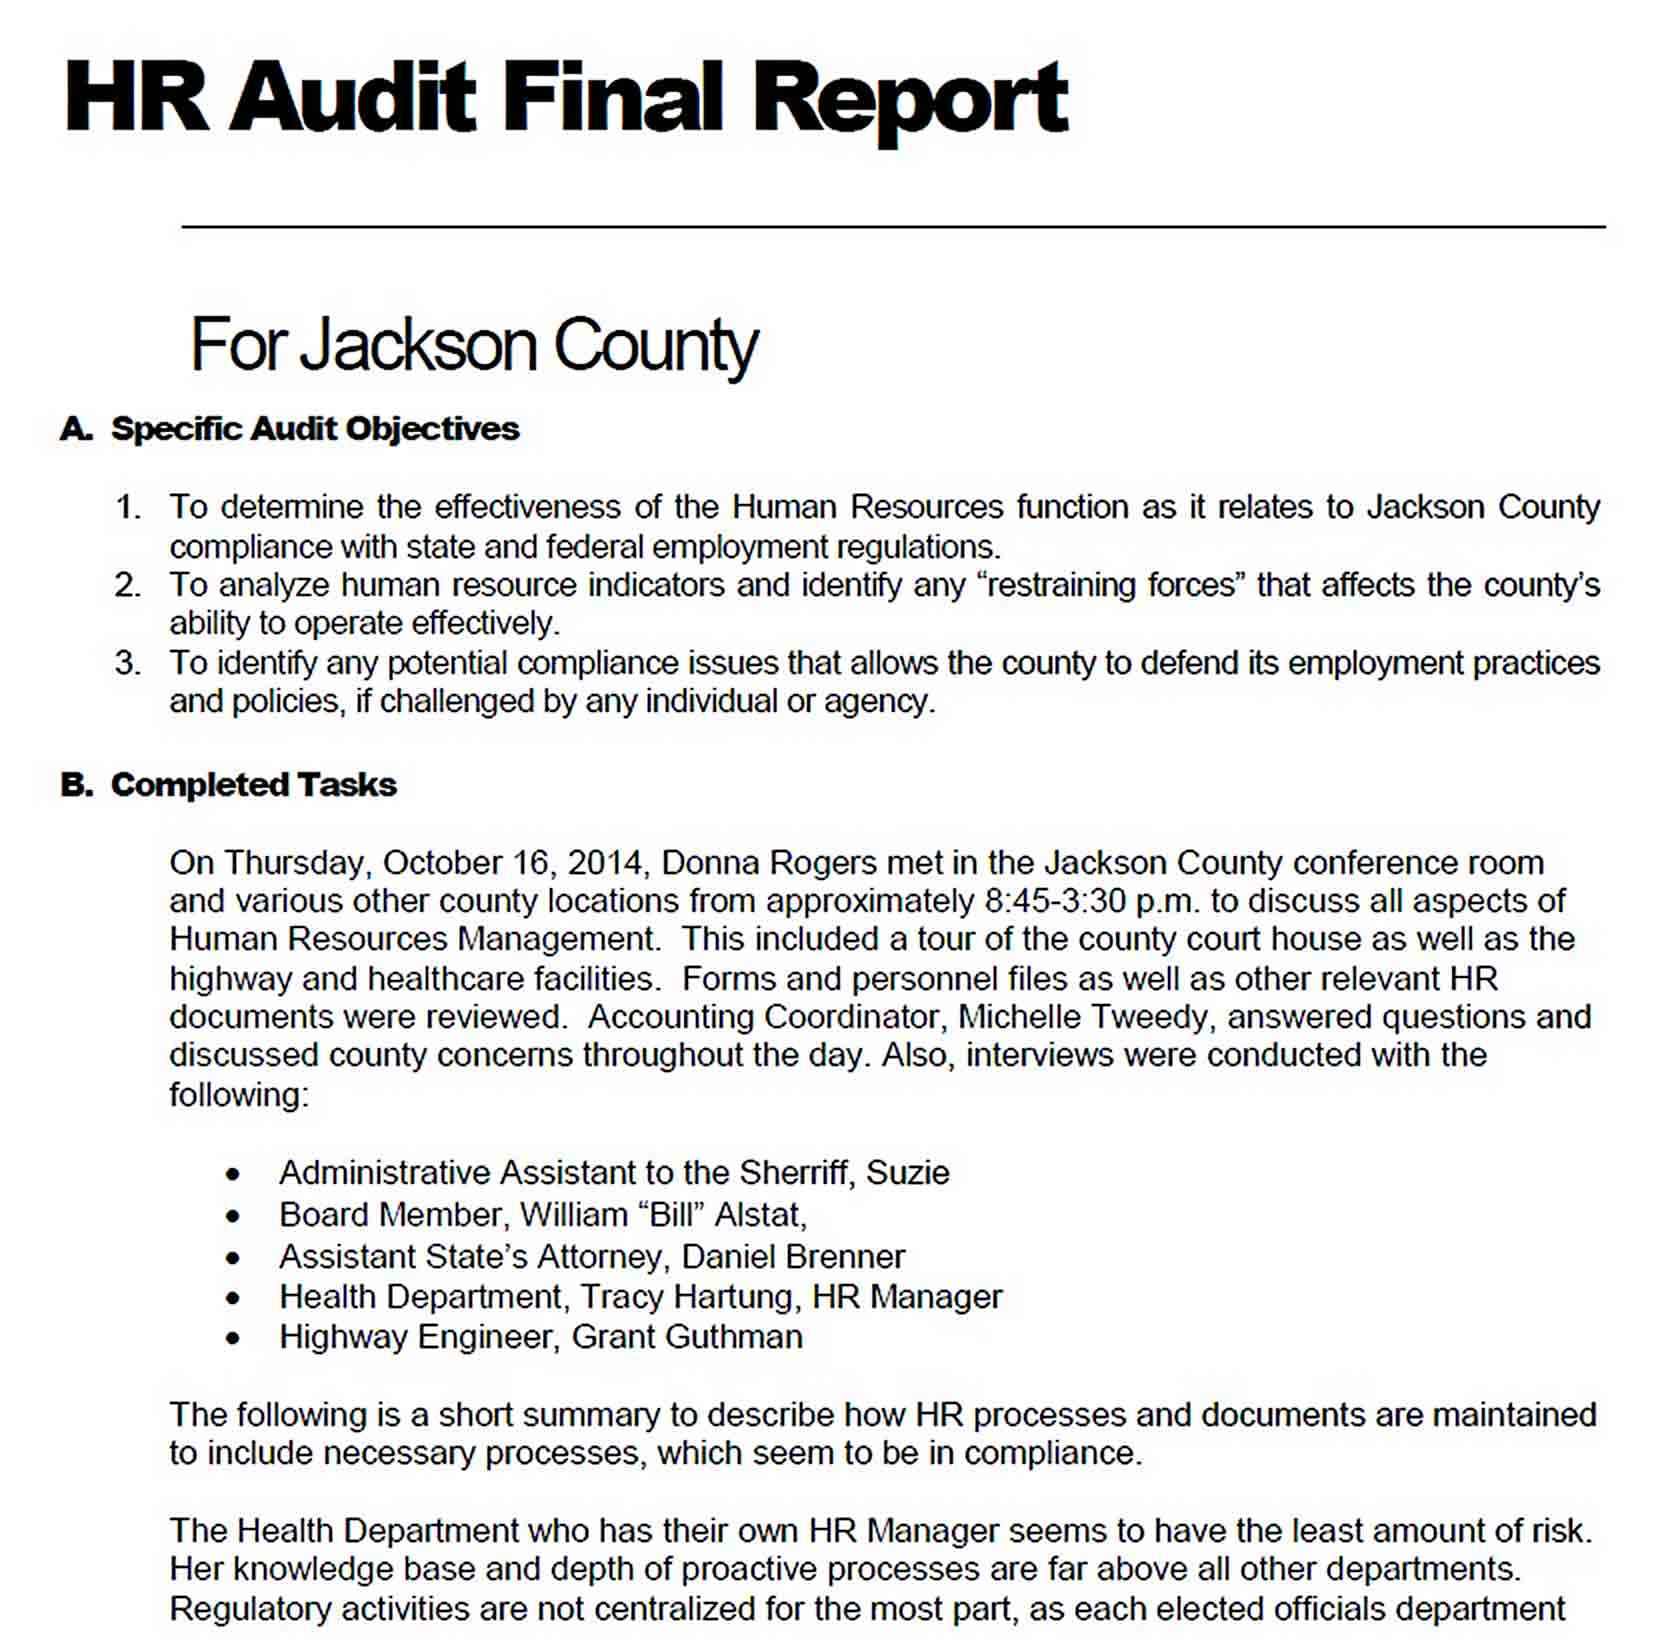 Templates HR Audit Final Report